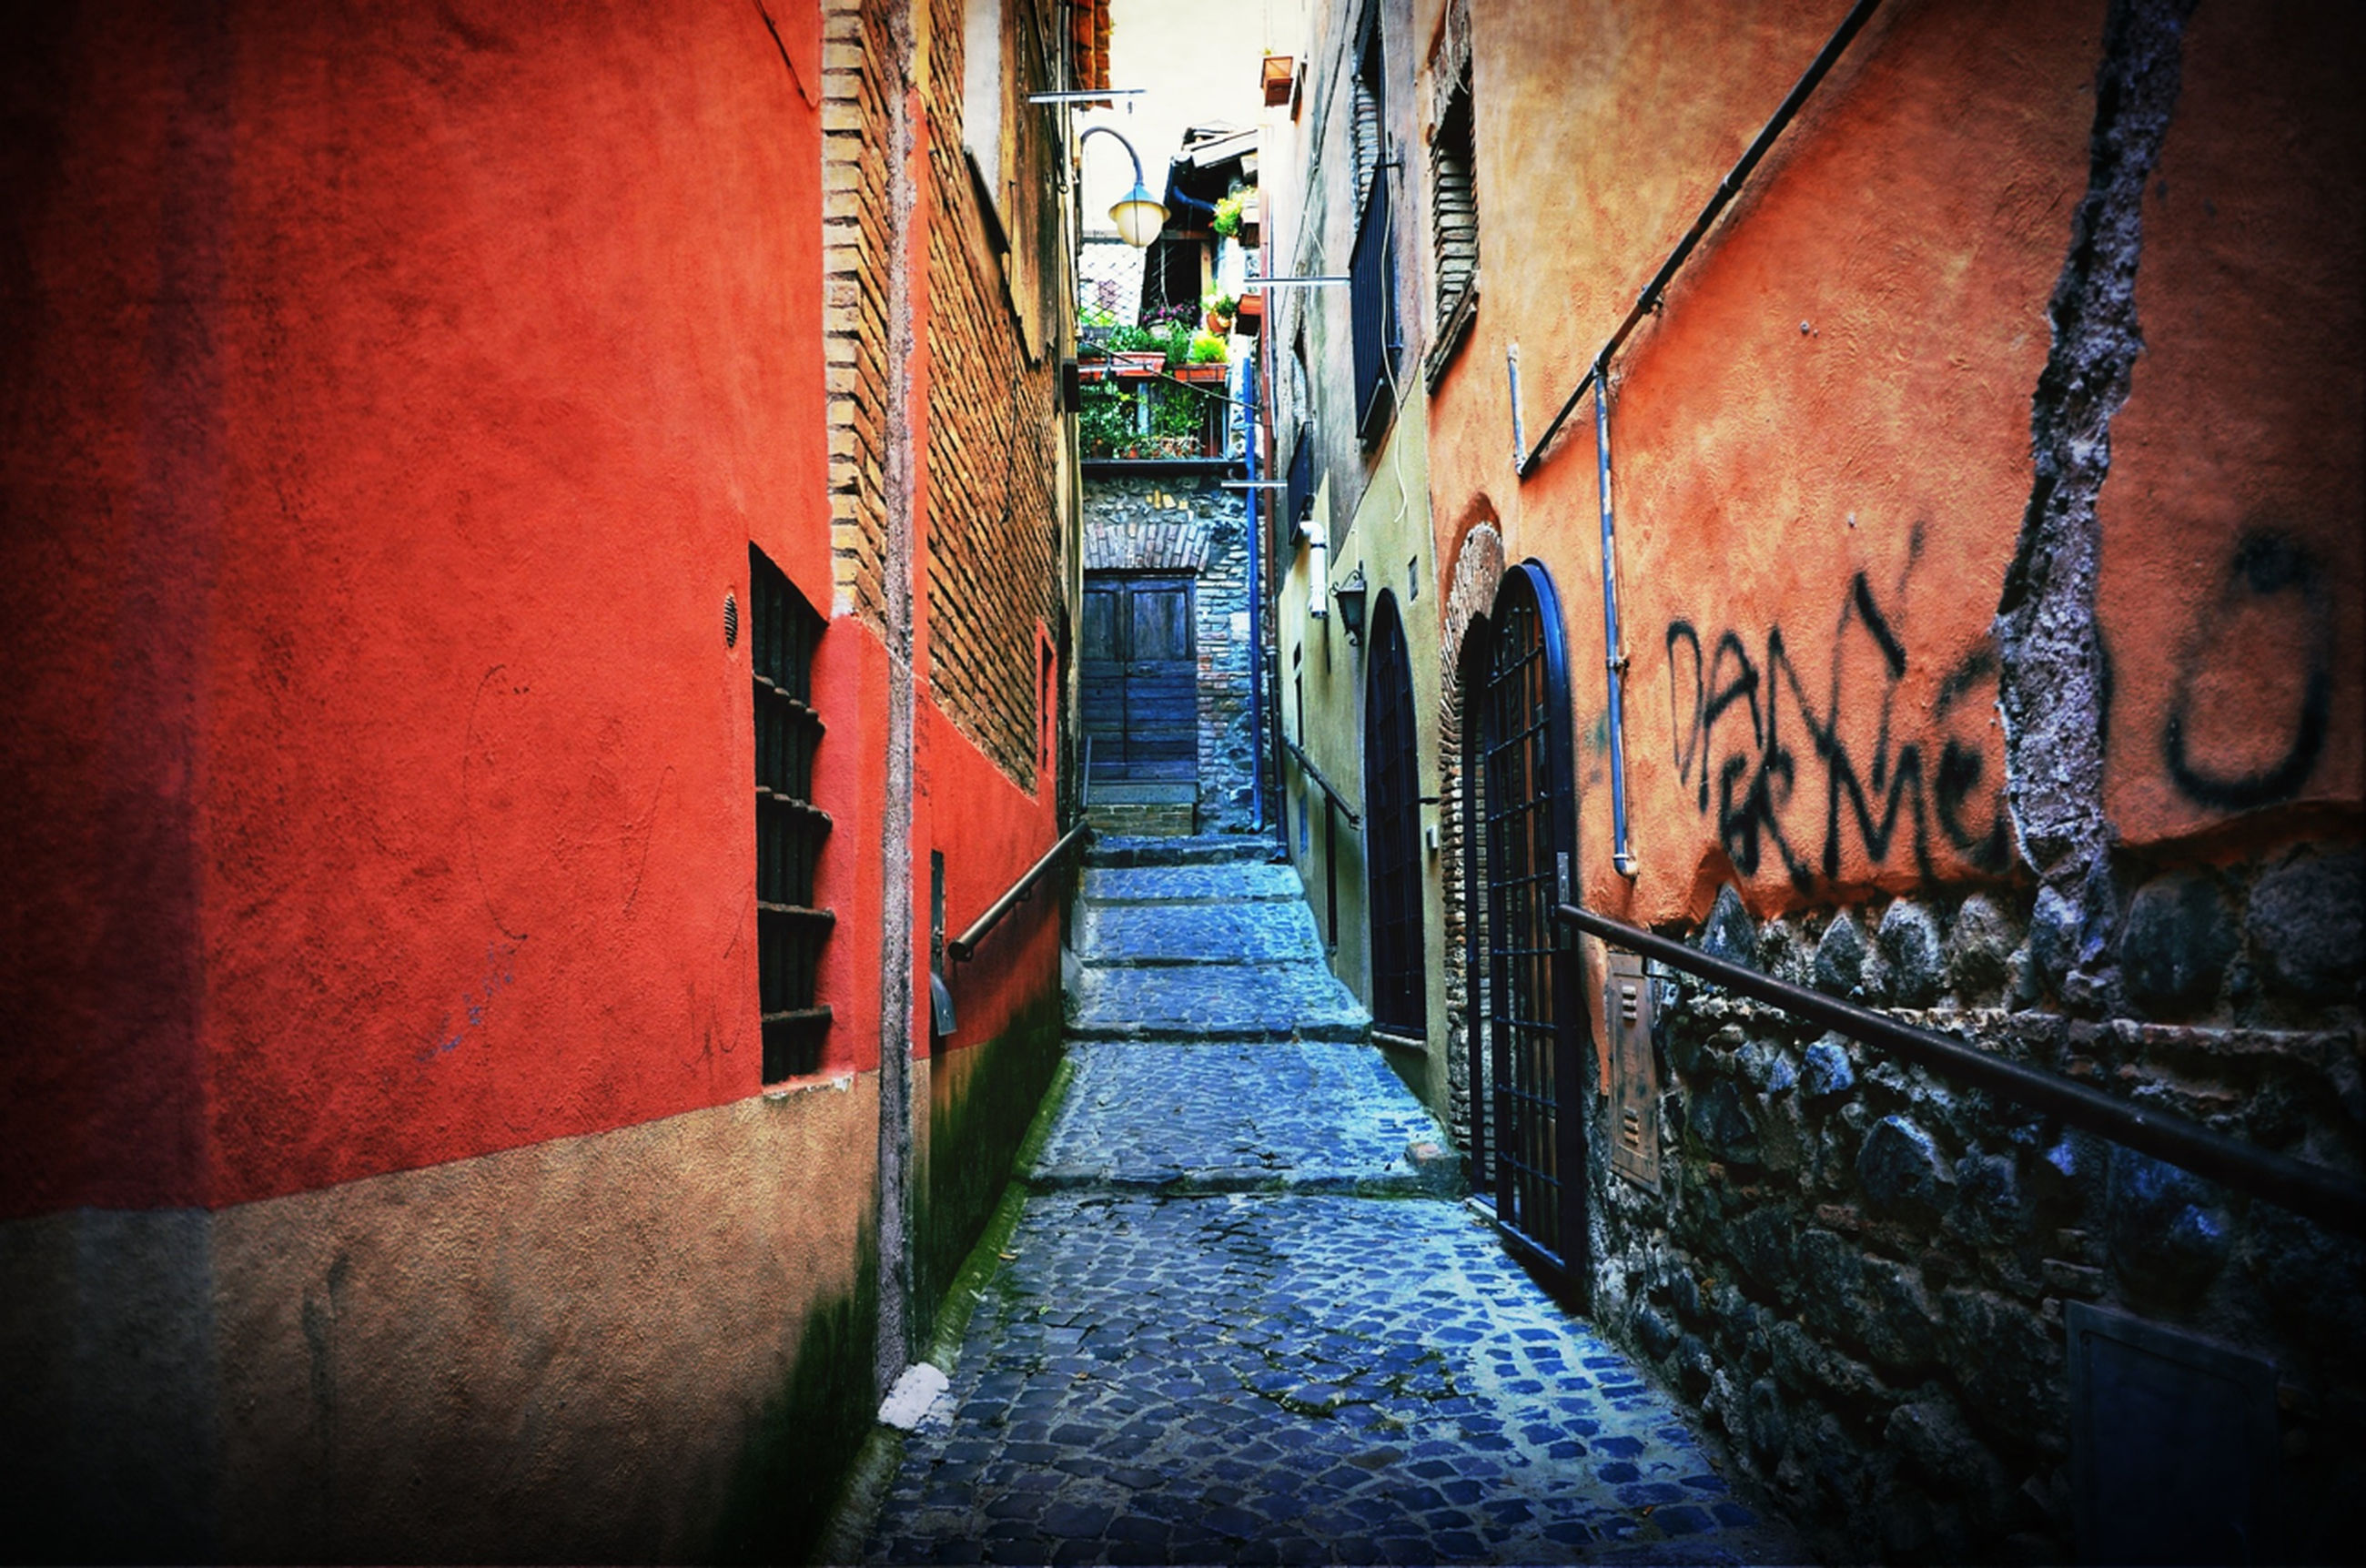 architecture, built structure, building exterior, the way forward, wall - building feature, building, steps, narrow, street, alley, diminishing perspective, residential building, city, residential structure, no people, day, outdoors, wall, steps and staircases, railing